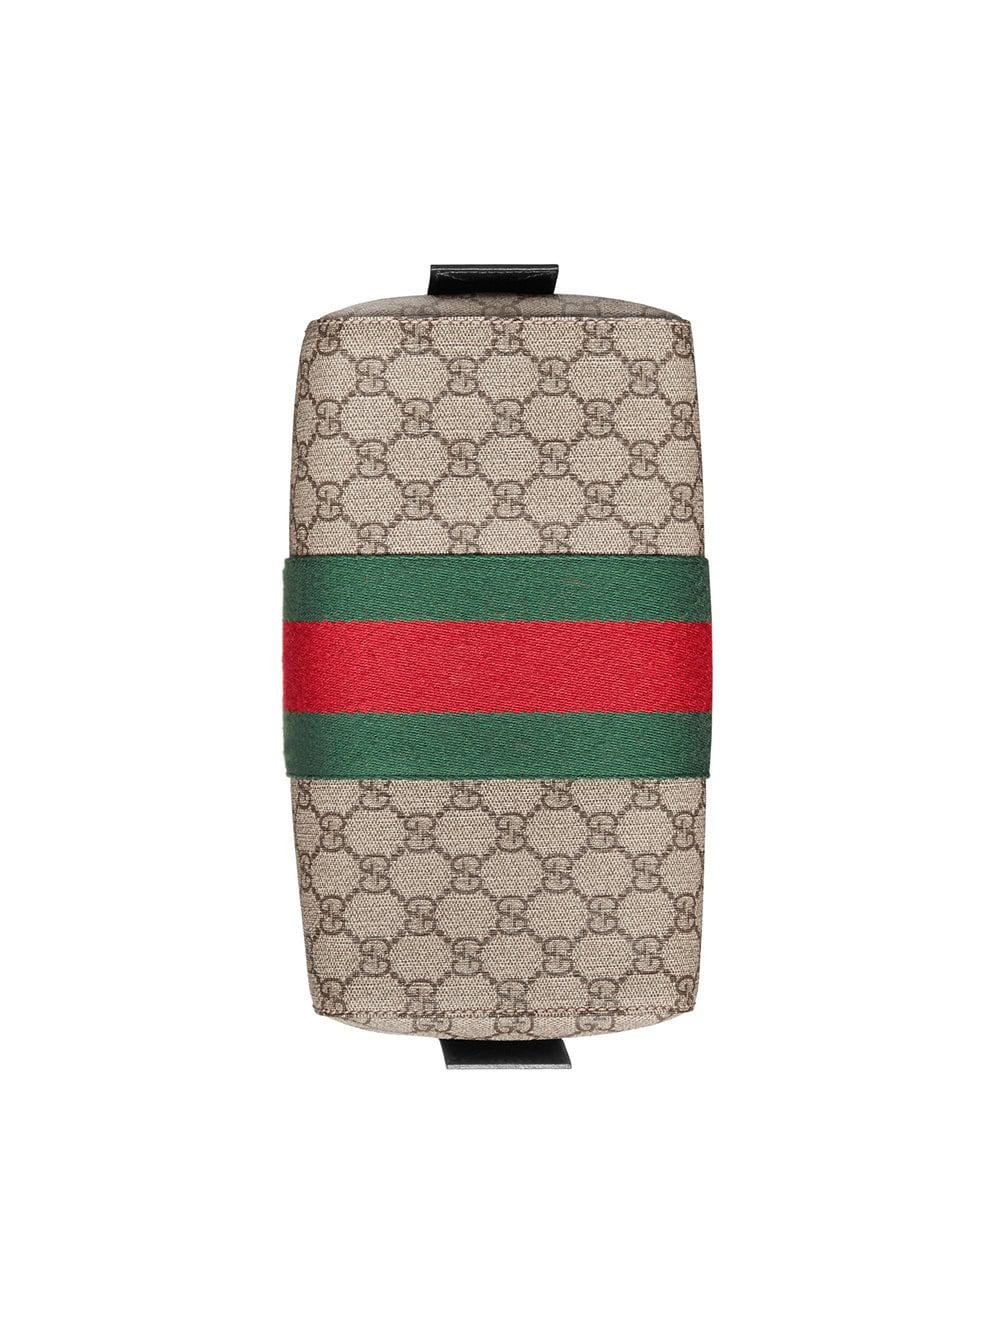 3e837863b6f6 Gucci Gg Supreme Toiletry Case for Men - Lyst